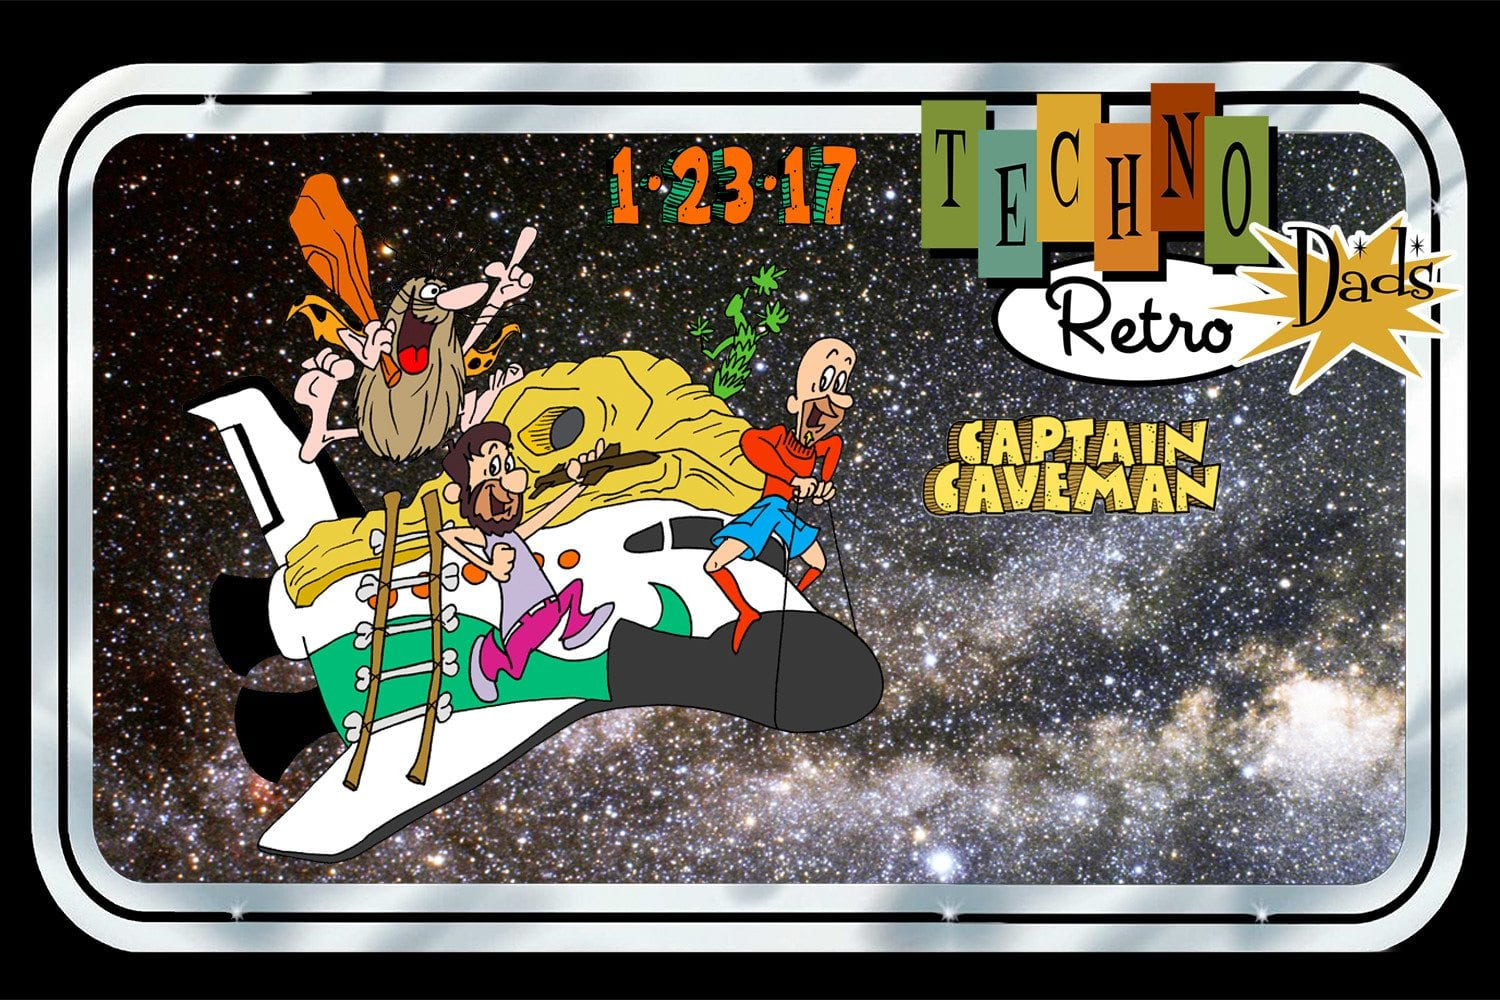 TechnoRetro Dads Captain Caveman